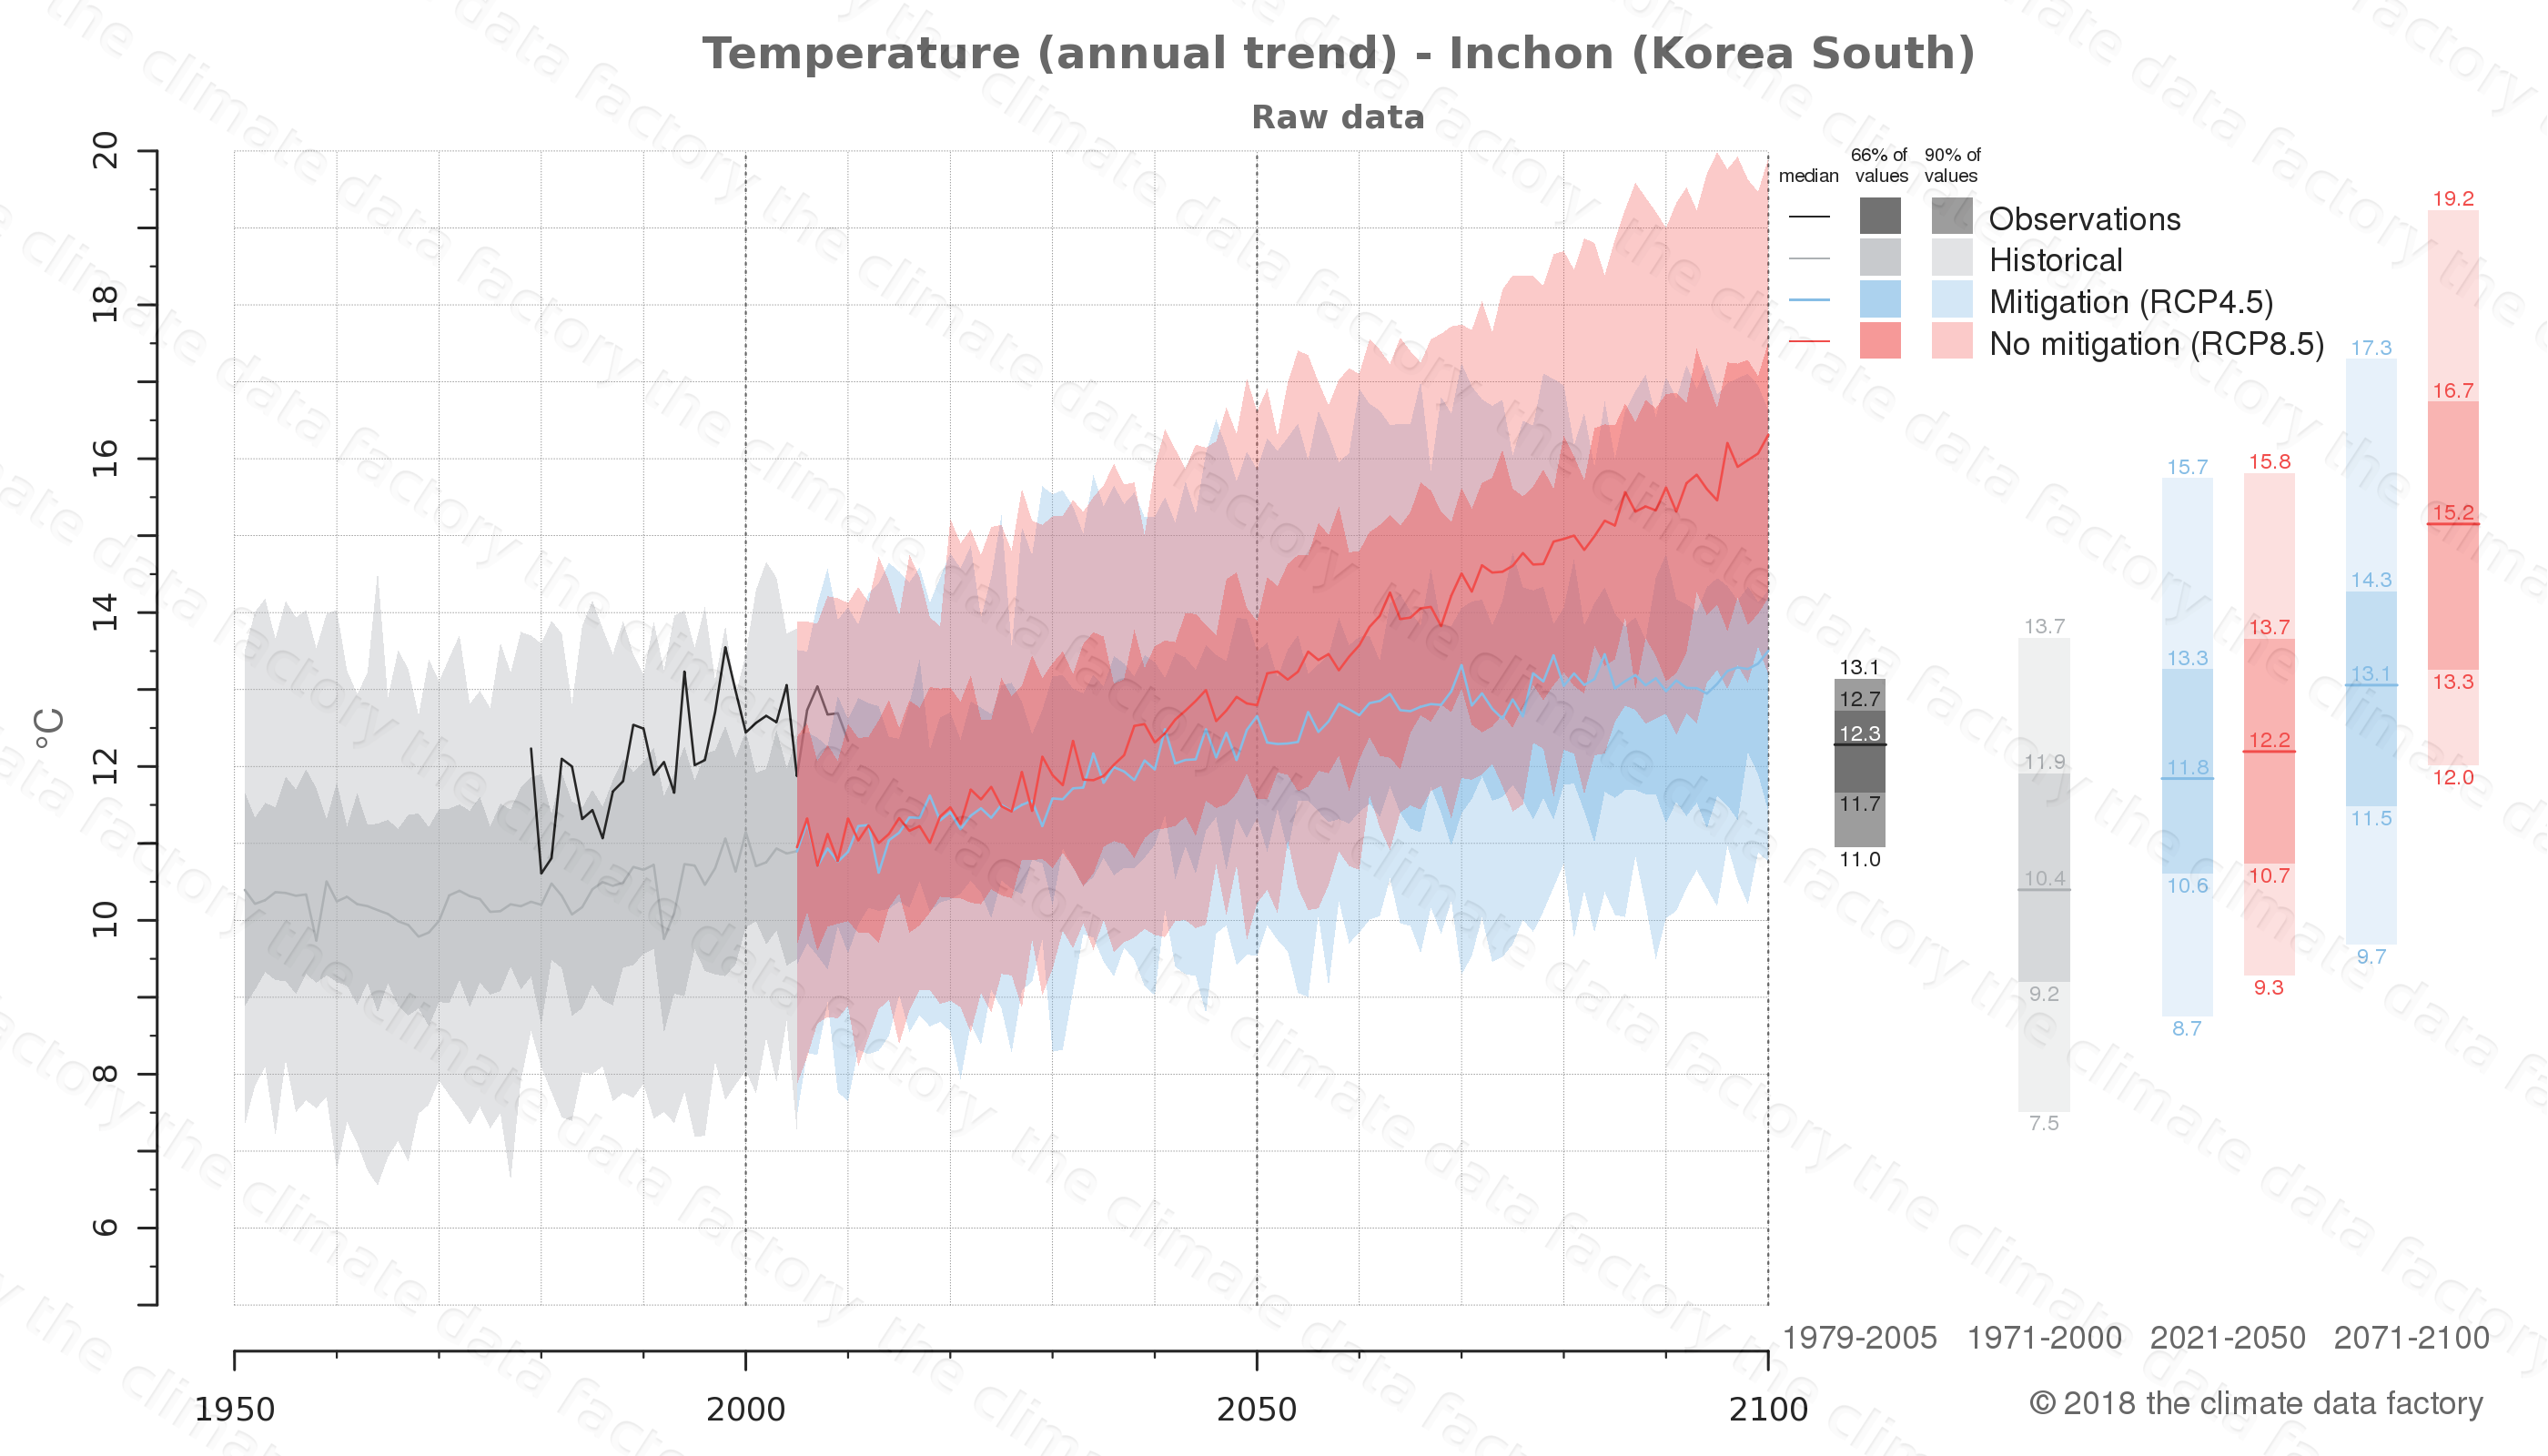 climate change data policy adaptation climate graph city data temperature inchon south korea